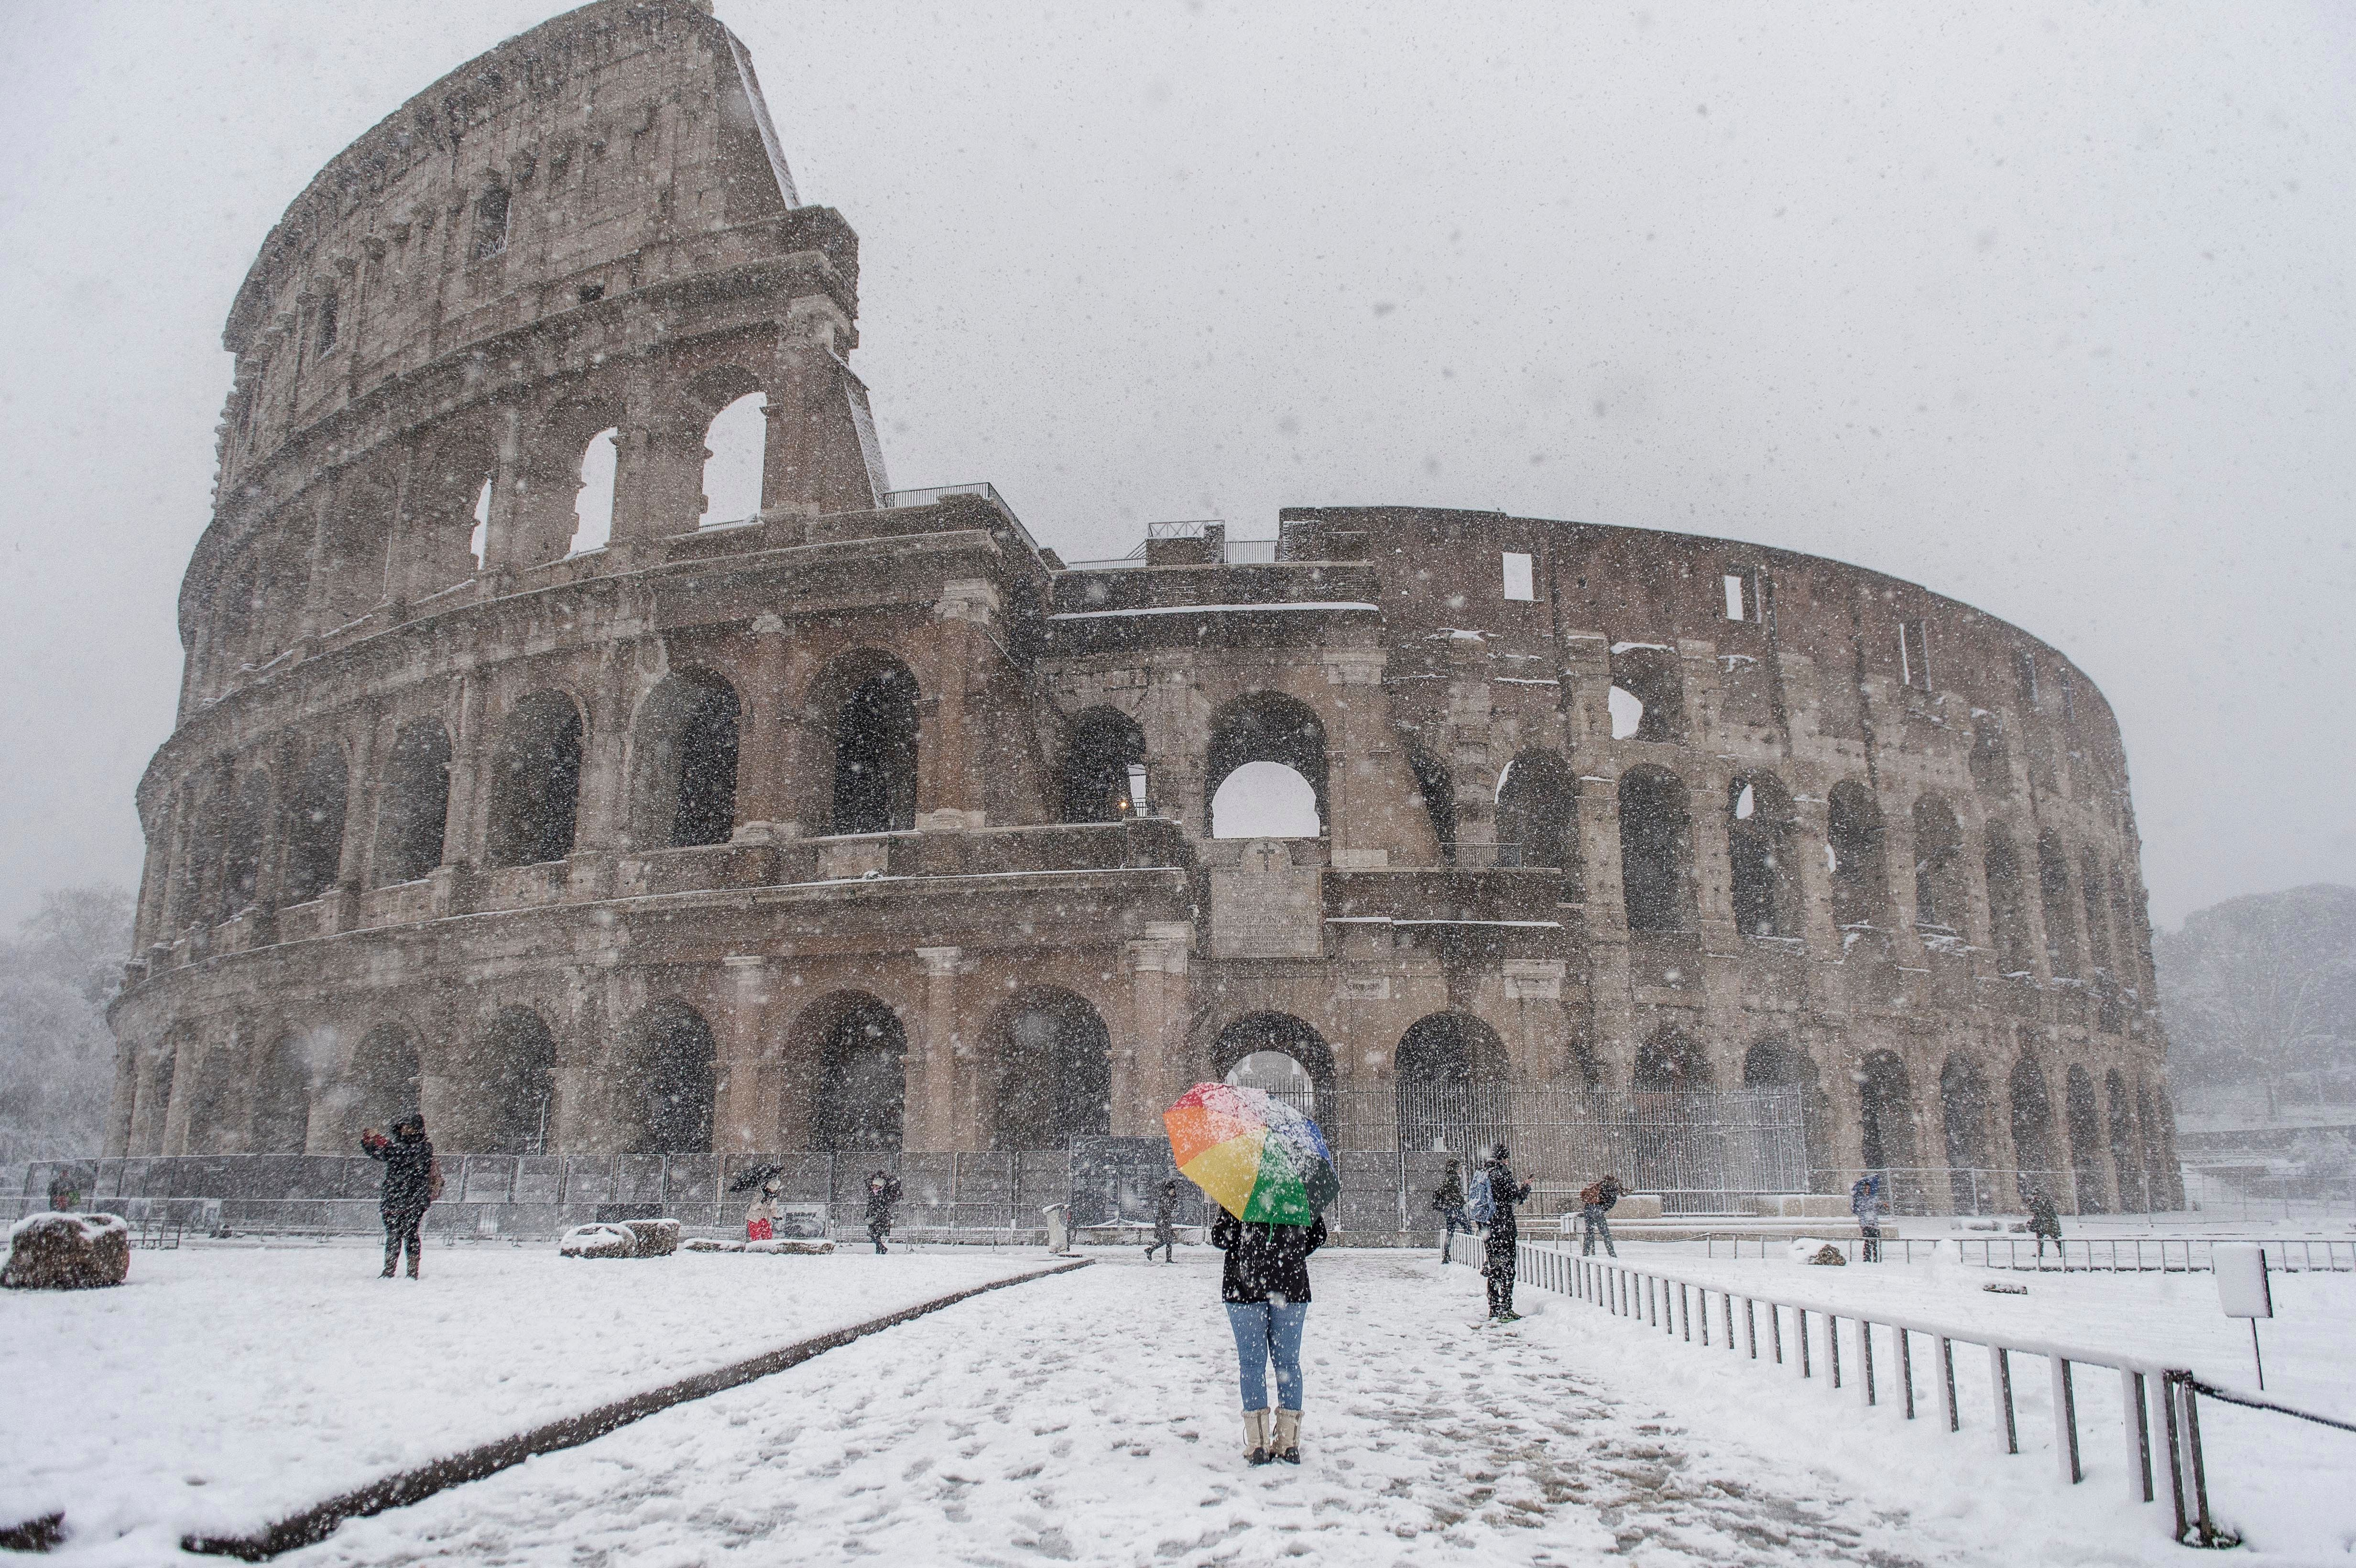 Rome Gets Rare Snowfall, And It's An Ancient Winter